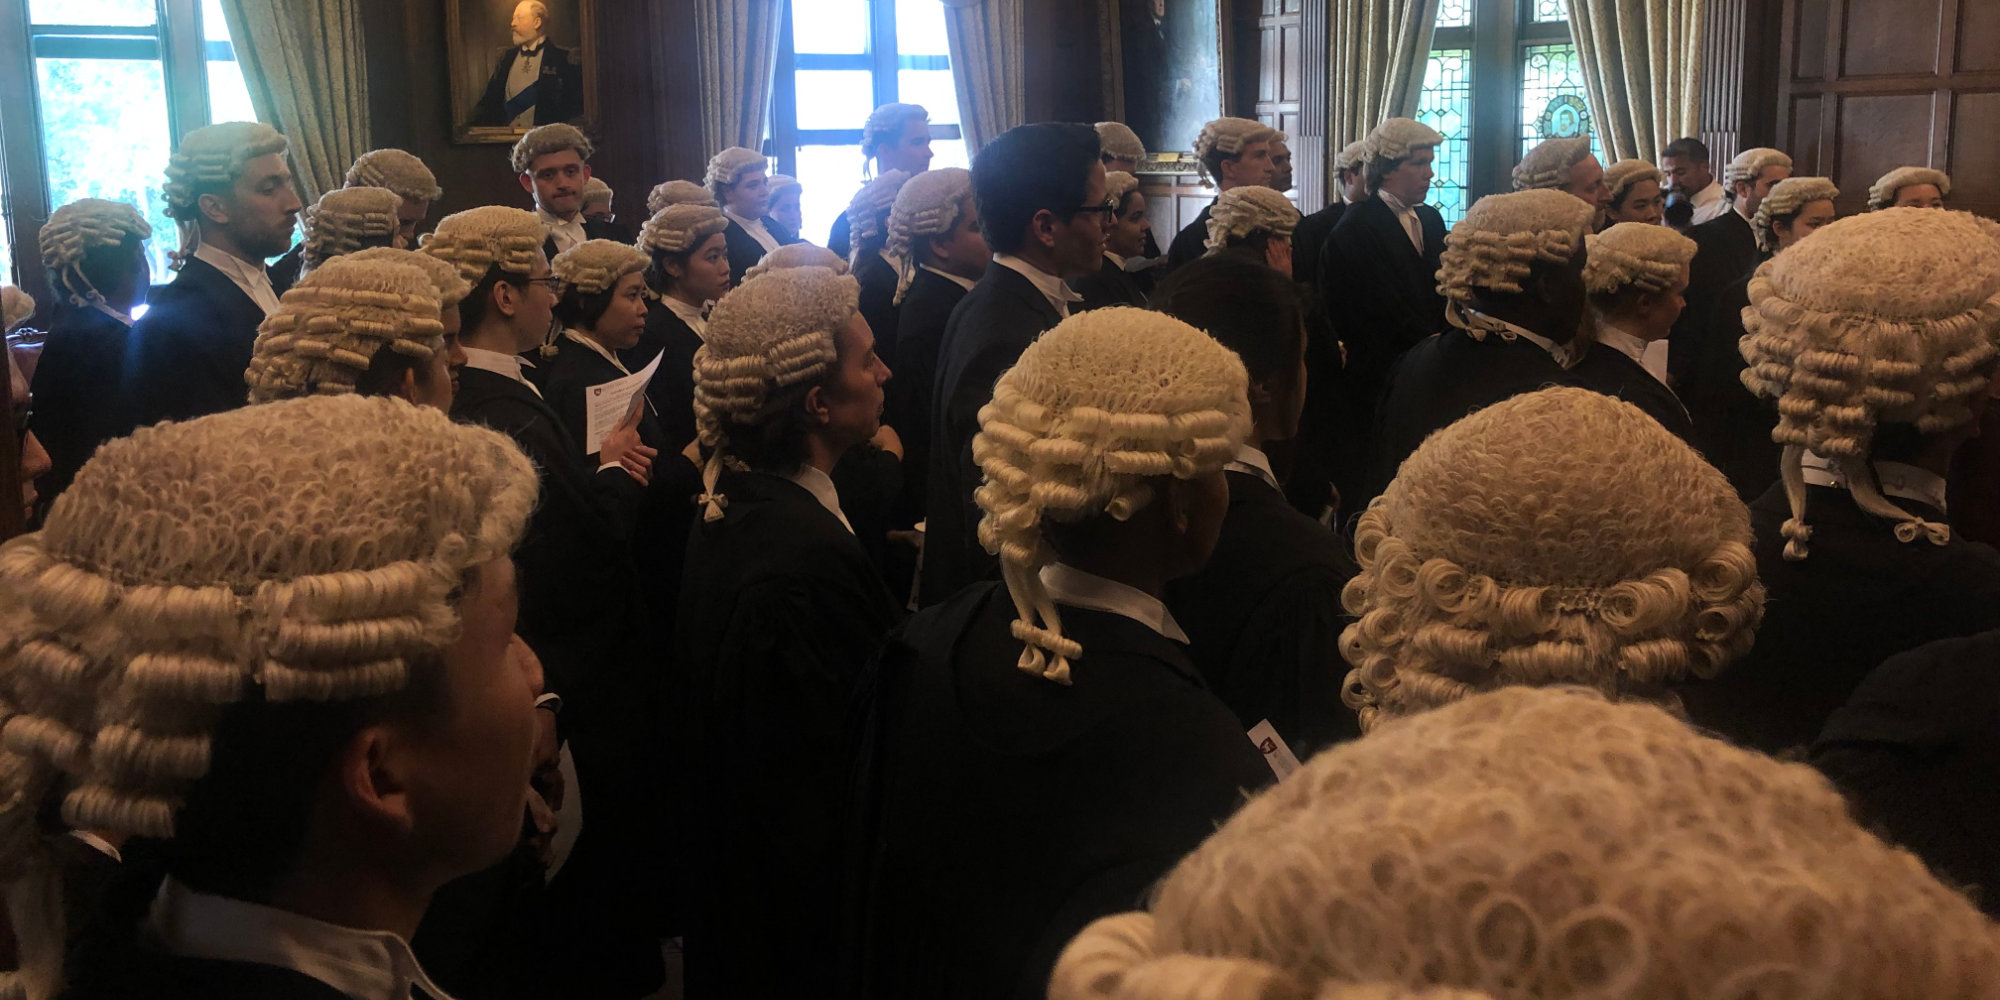 many barristers